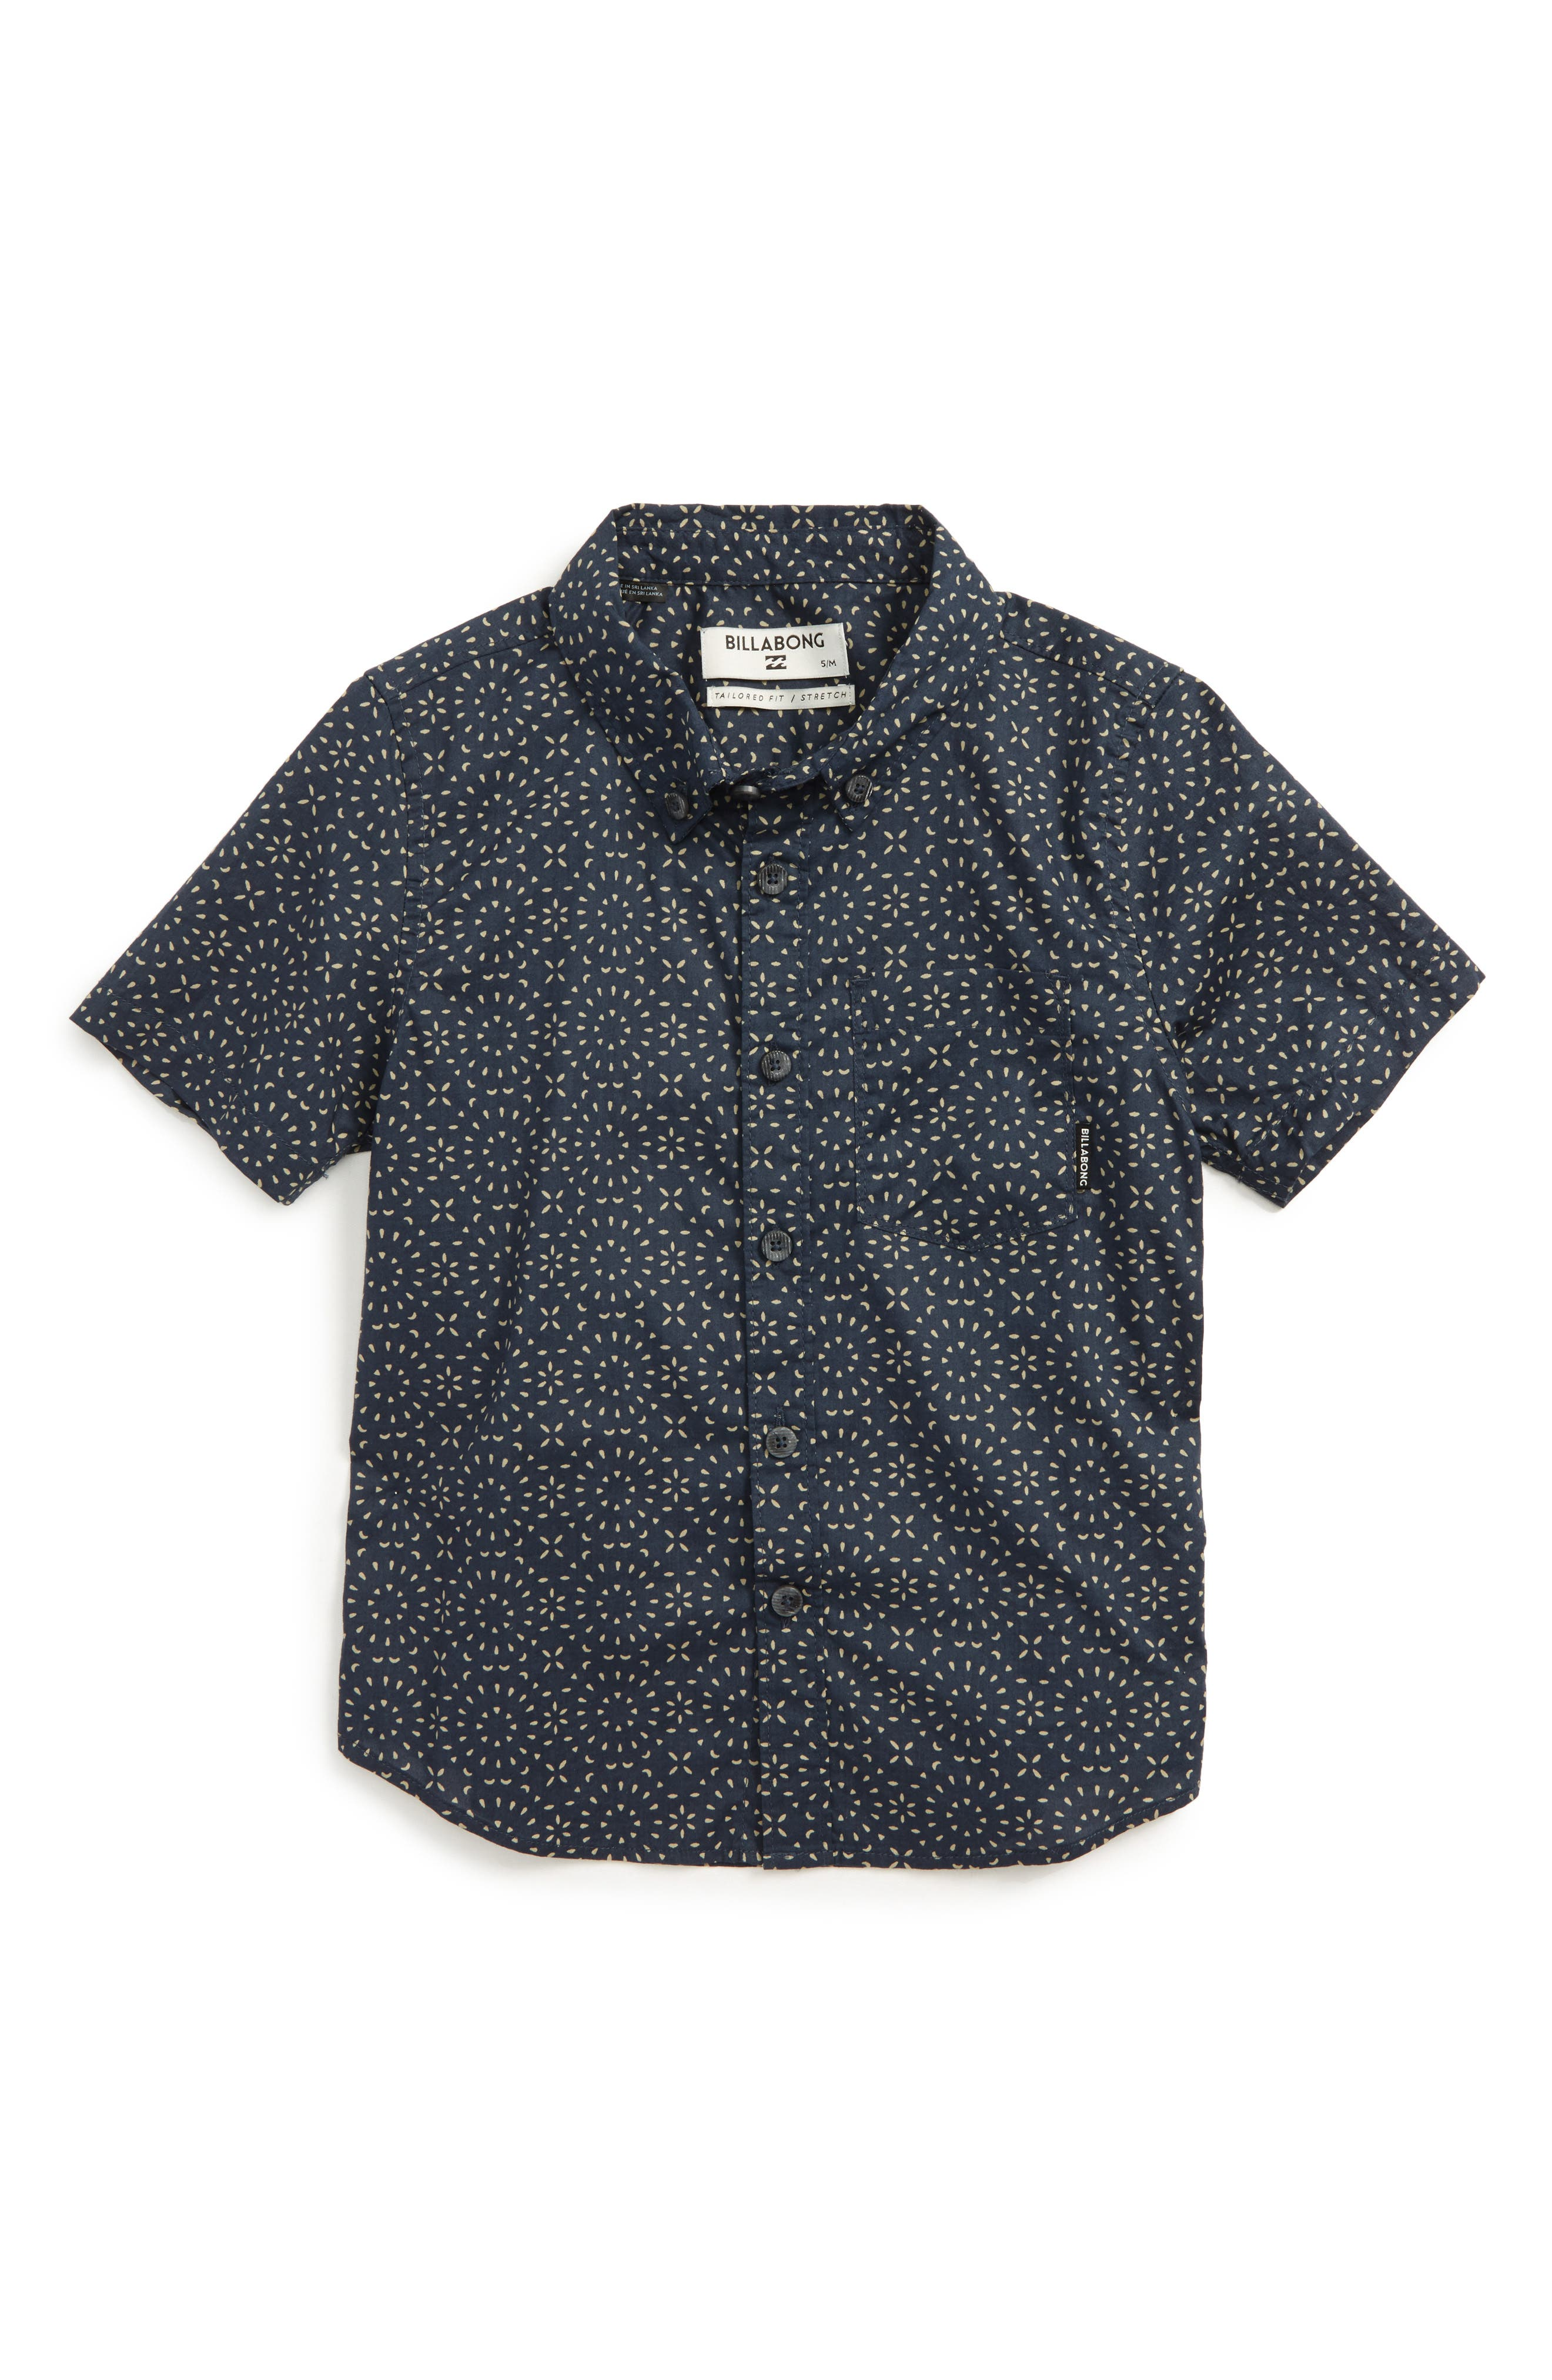 Billabong Sundays Mini Woven Shirt (Toddler Boys)